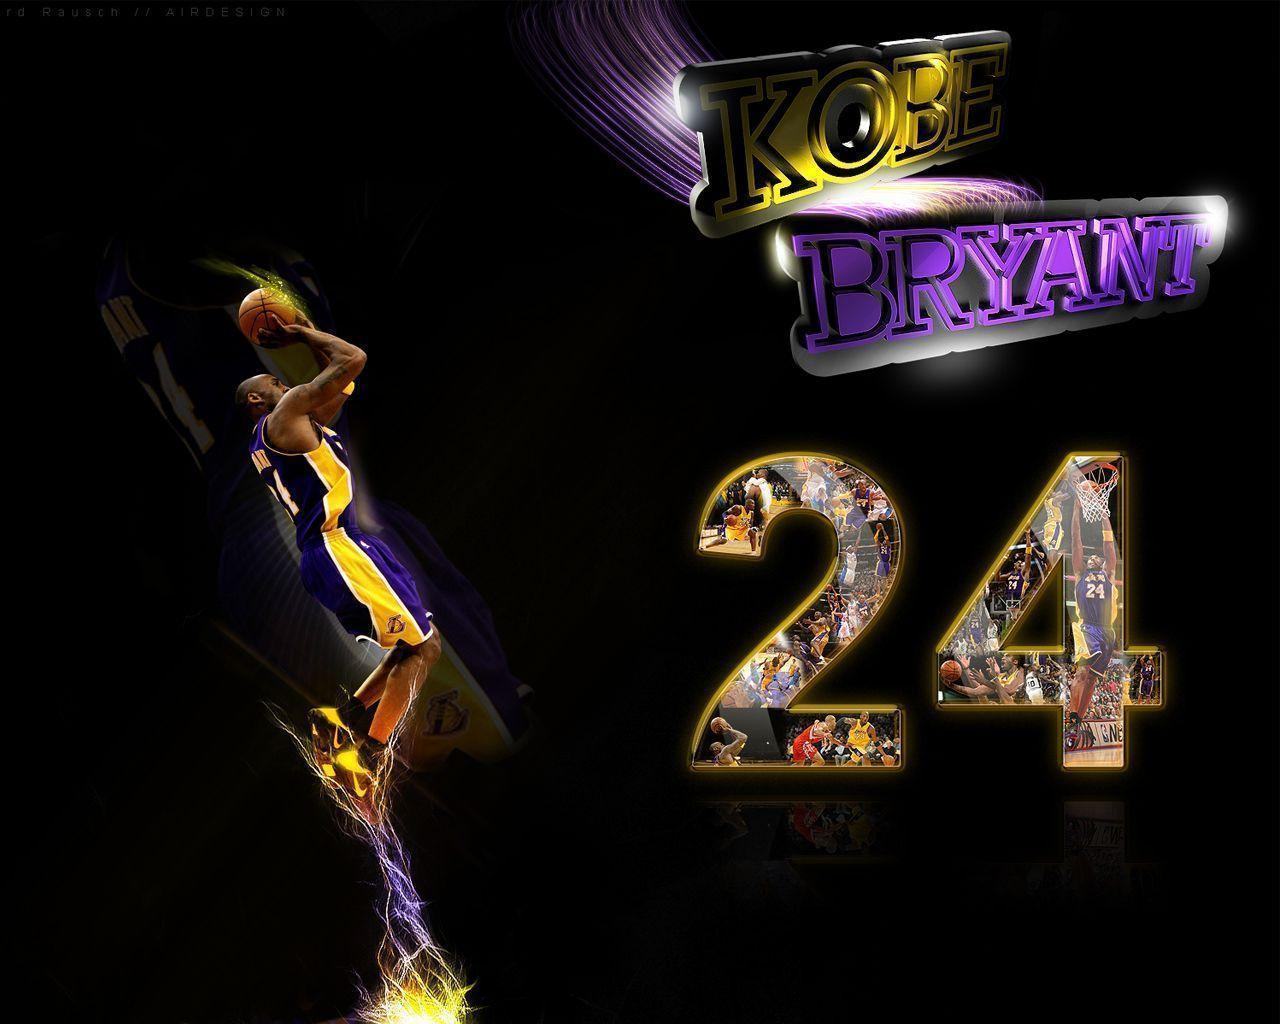 Kobe bryant wallpapers hd 2015 wallpaper cave for Wallpaper interactivo